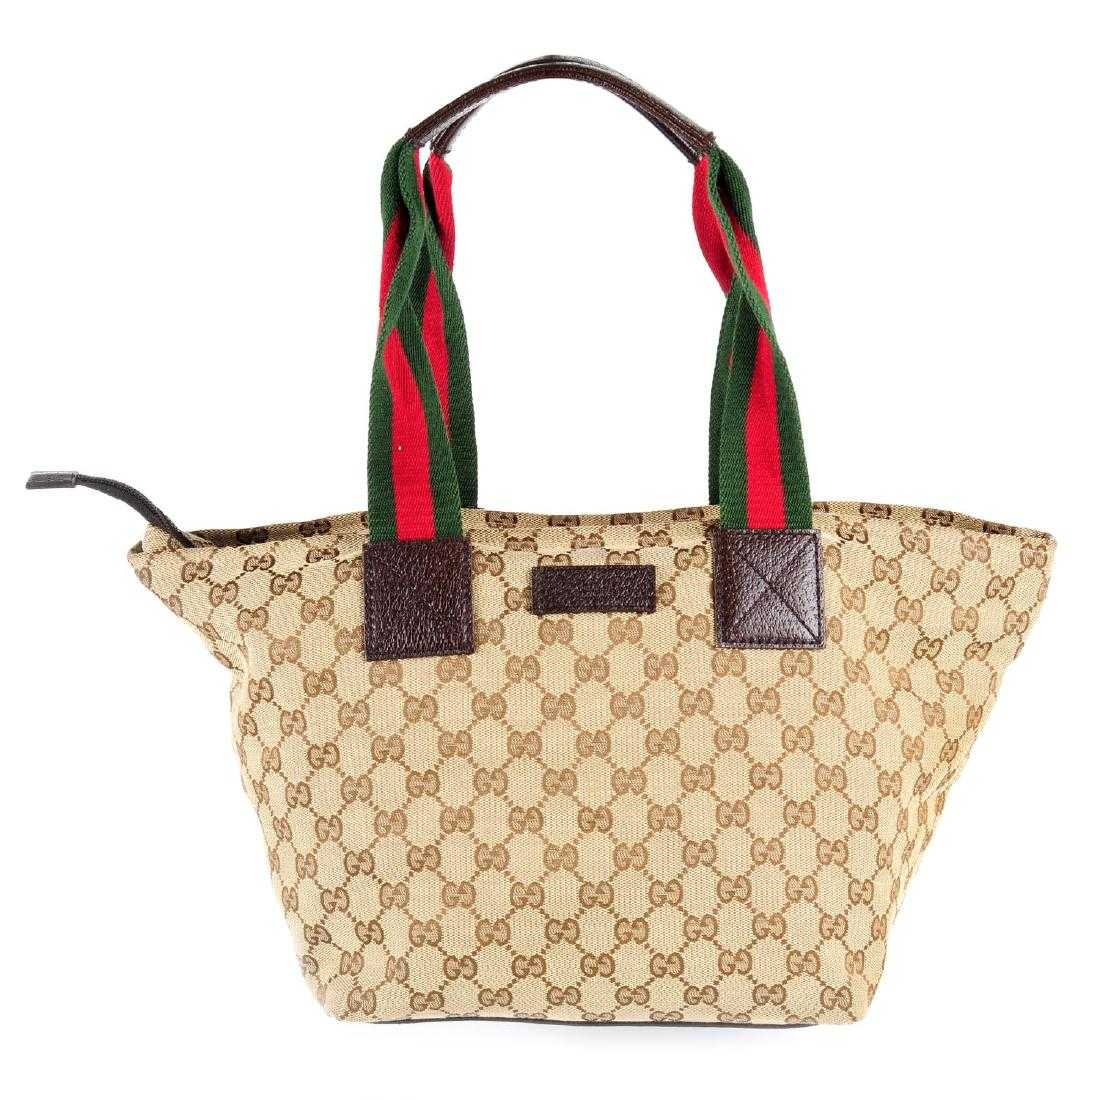 1fb2618b195 GUCCI - a Monogram Web handbag. Crafted from maker s